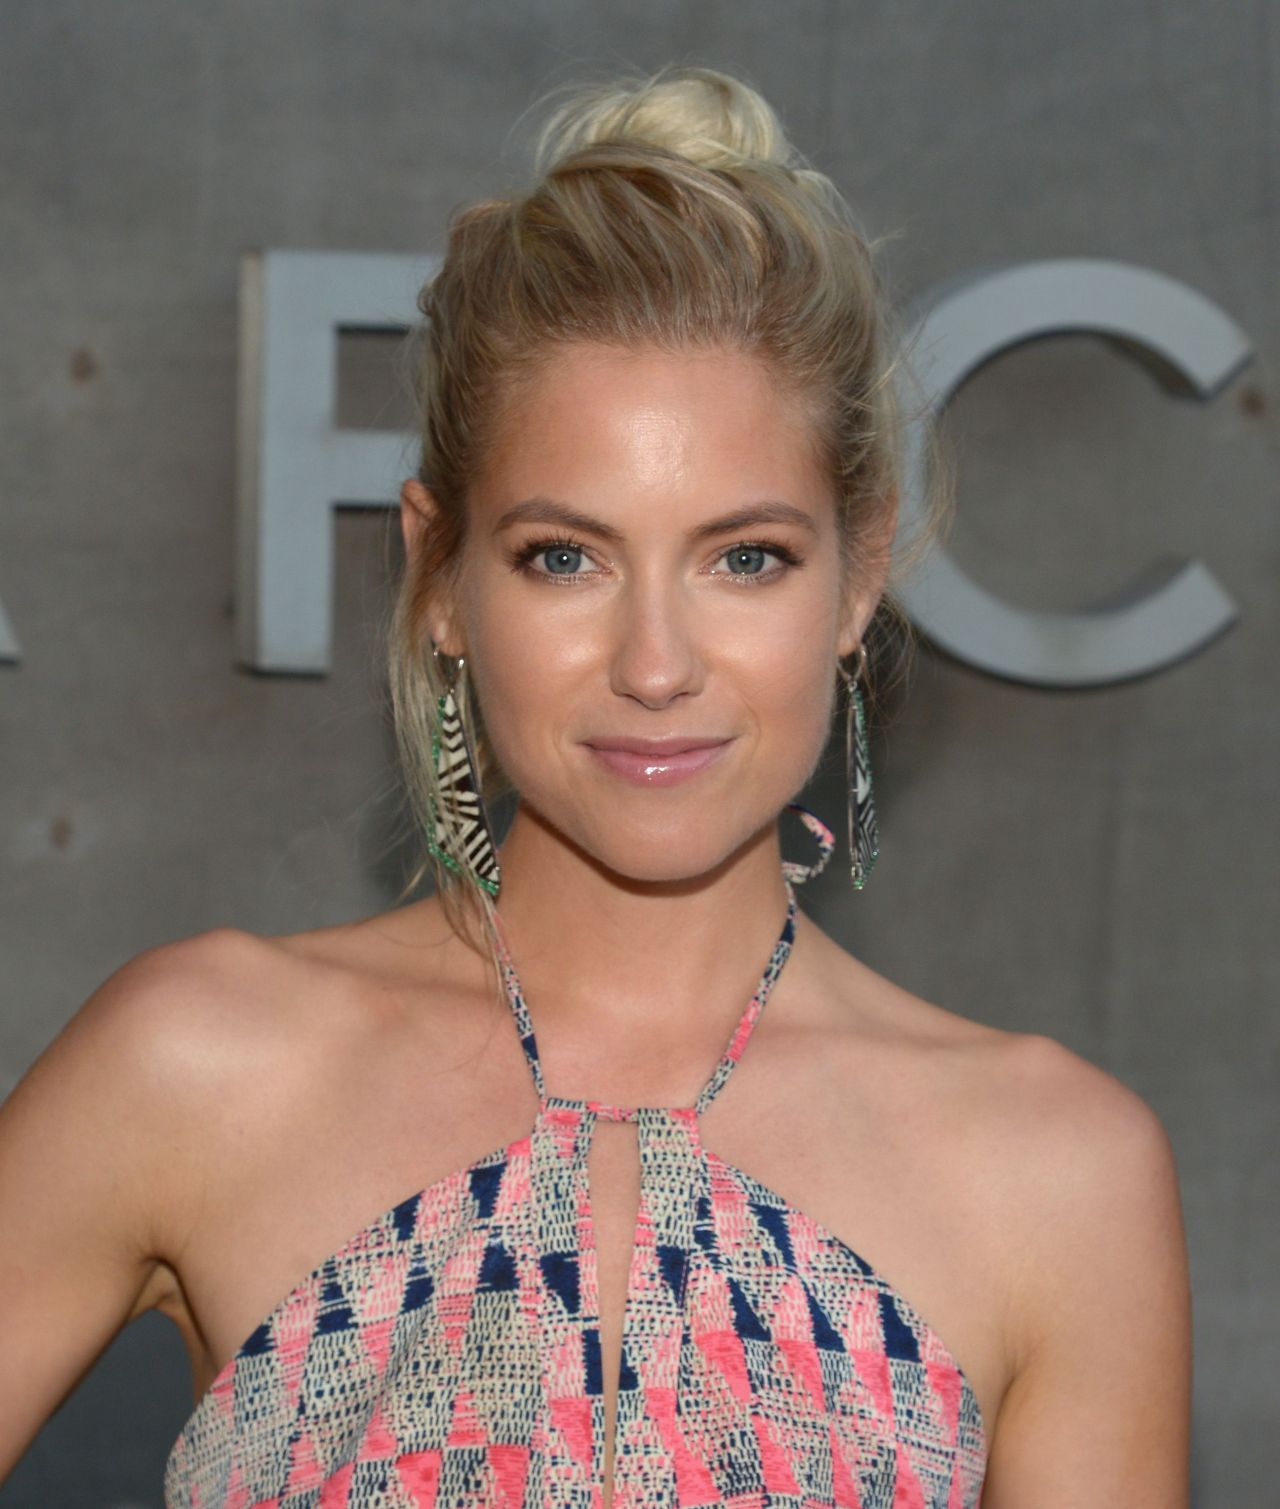 Laura Ramsey nudes (39 photos), Topless, Cleavage, Selfie, braless 2020